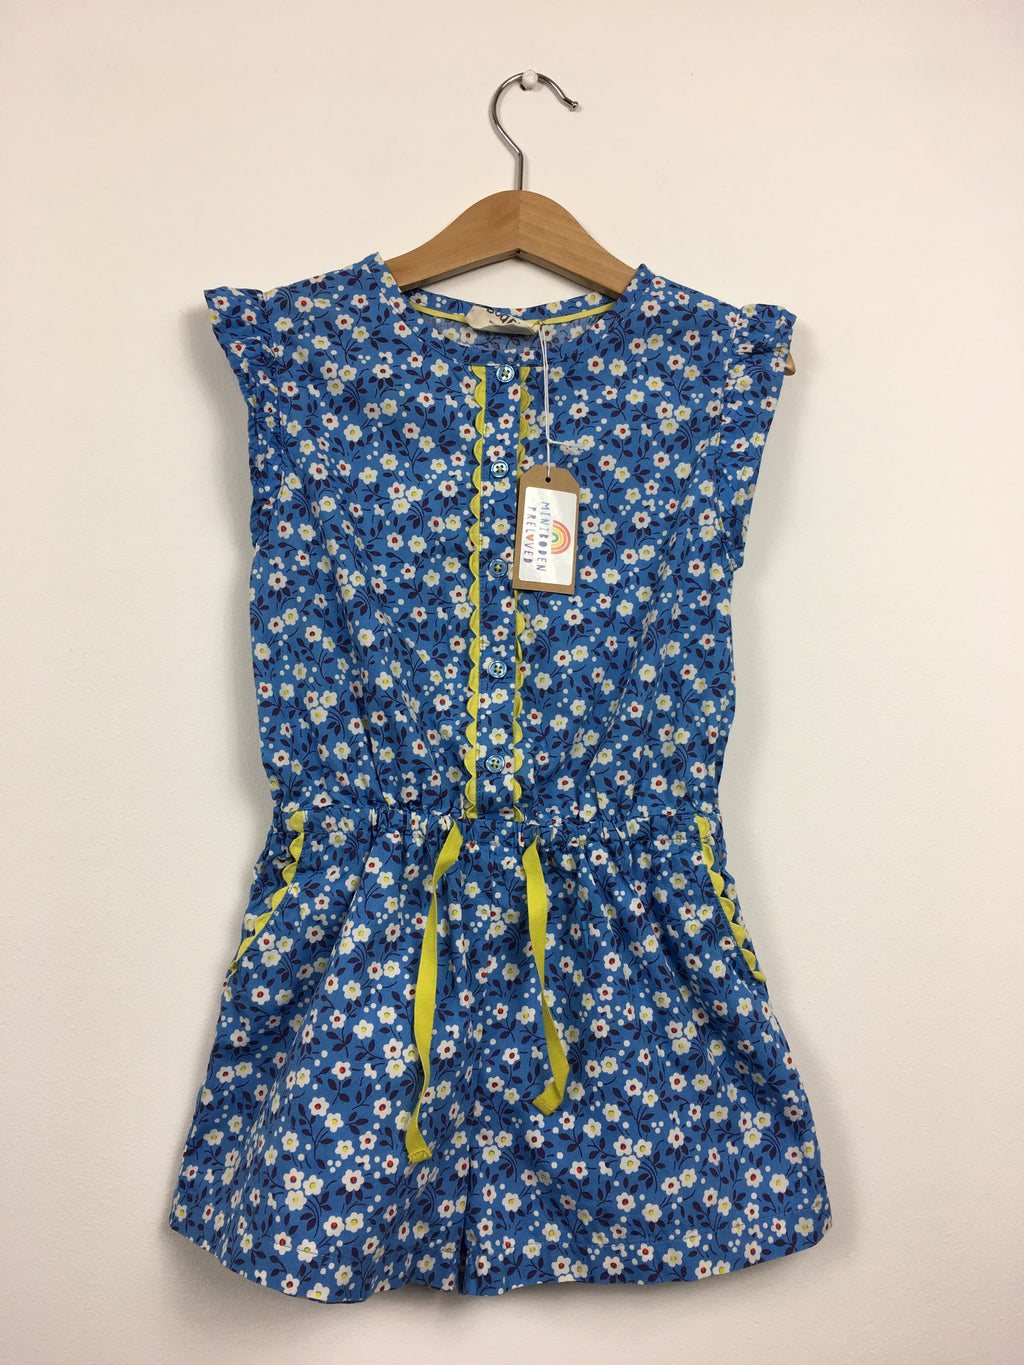 Blue Floral Playsuit (4-5 Years)